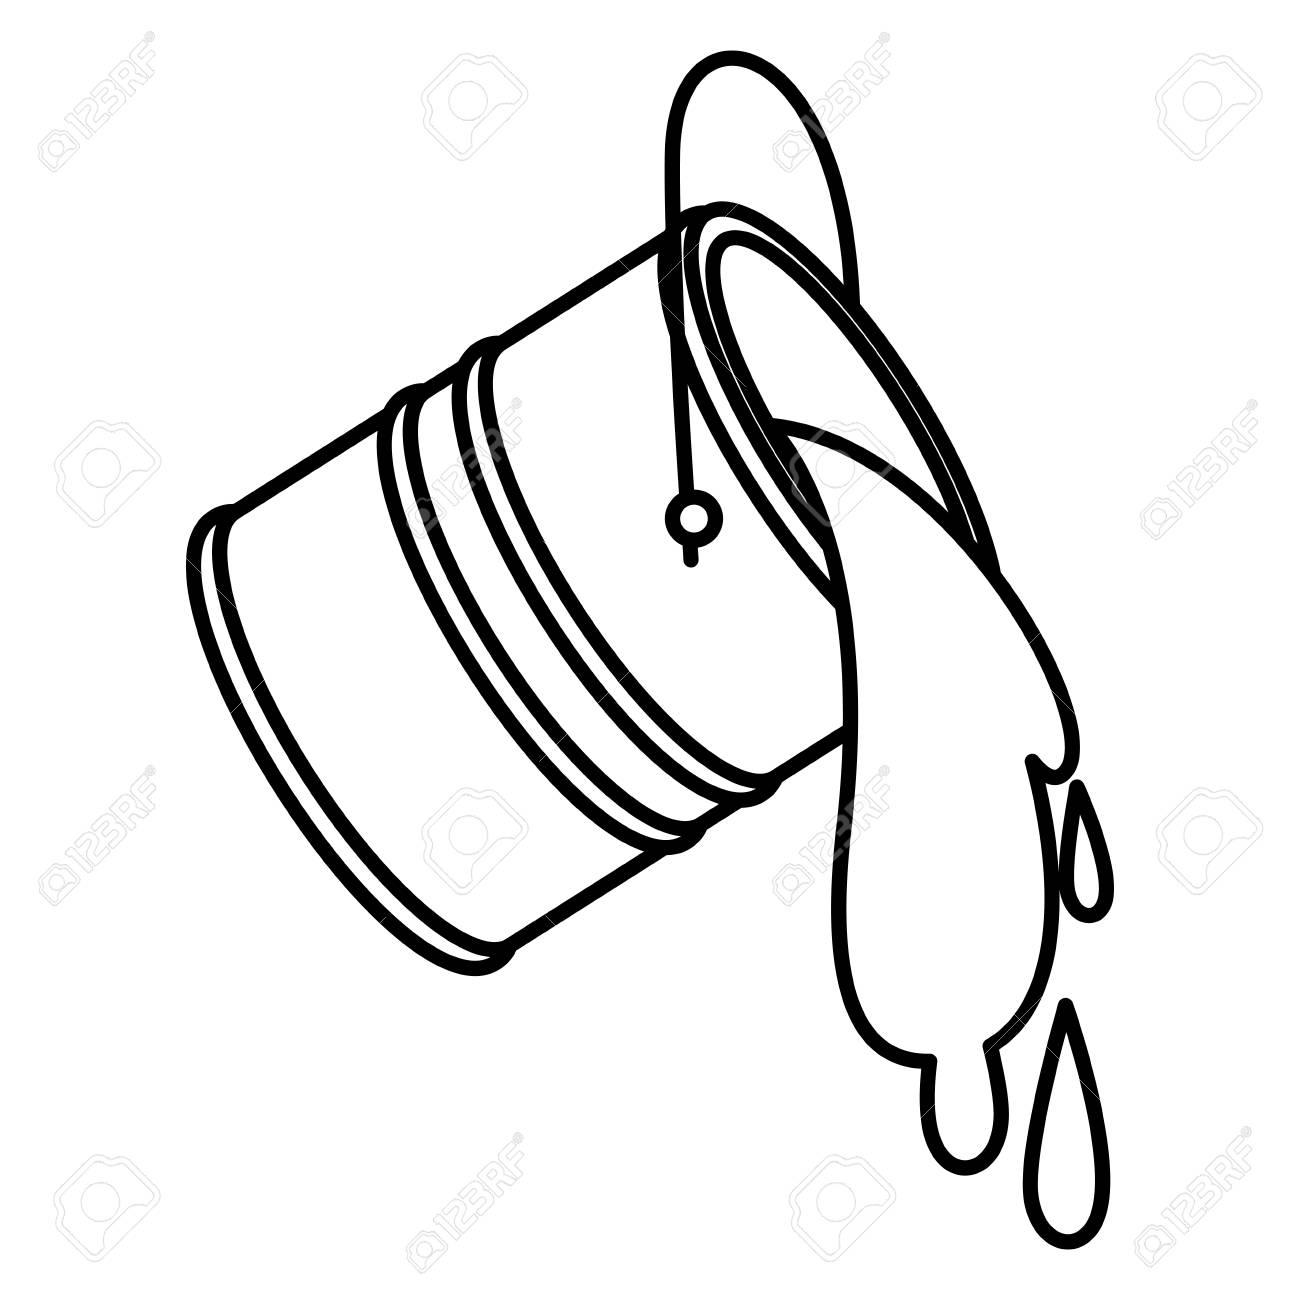 Paint Bucket Spilling Icon In Black Contour Vector Illustration Royalty Free Cliparts Vectors And Stock Illustration Image 94736461